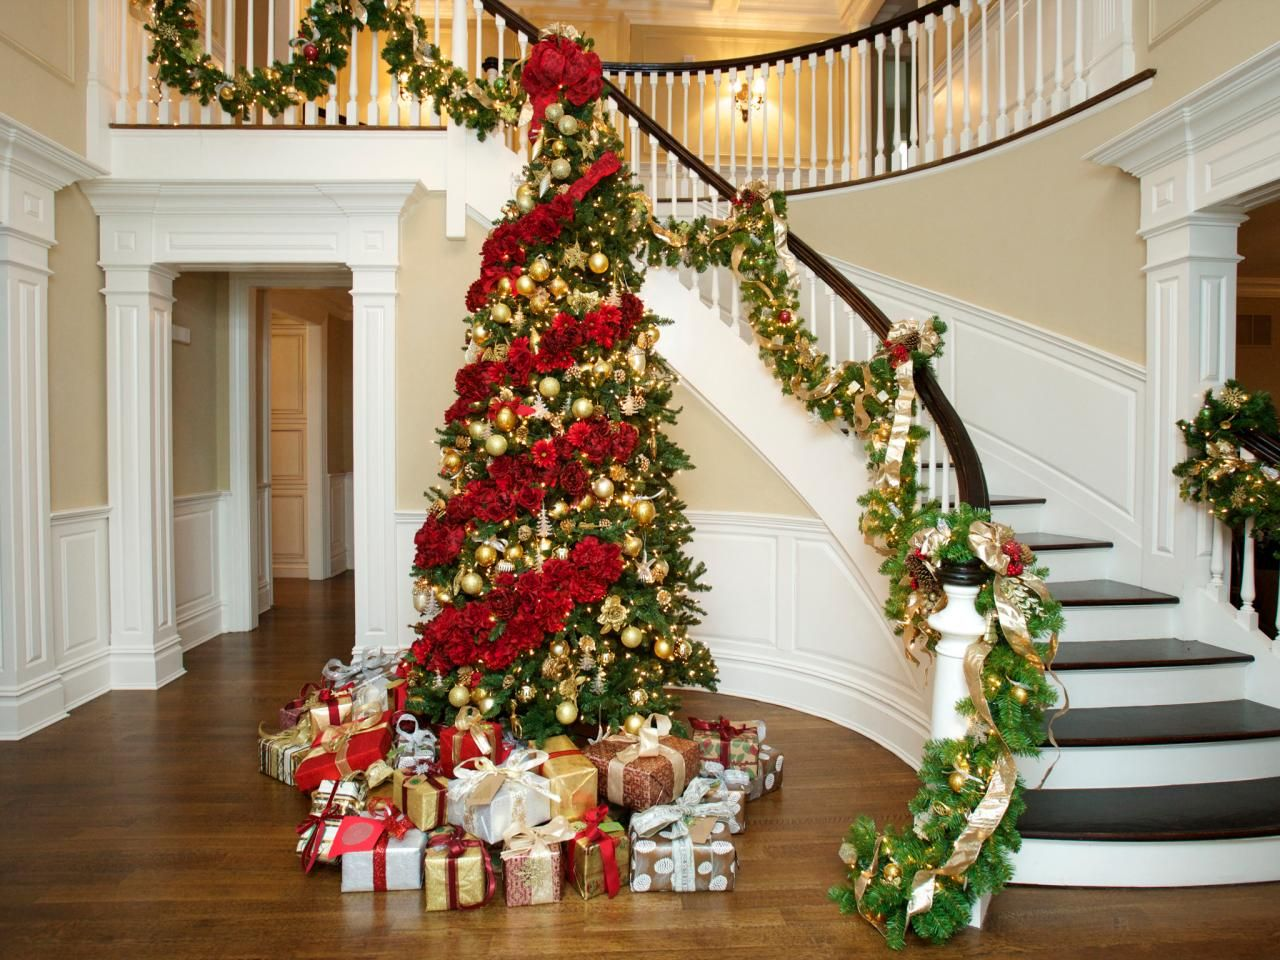 Holiday Entryway Decorating Ideas Part - 19: Celebrity Holiday Homes | Holiday Decorating And Entertaining Ideas U0026  How-Tos | HGTV